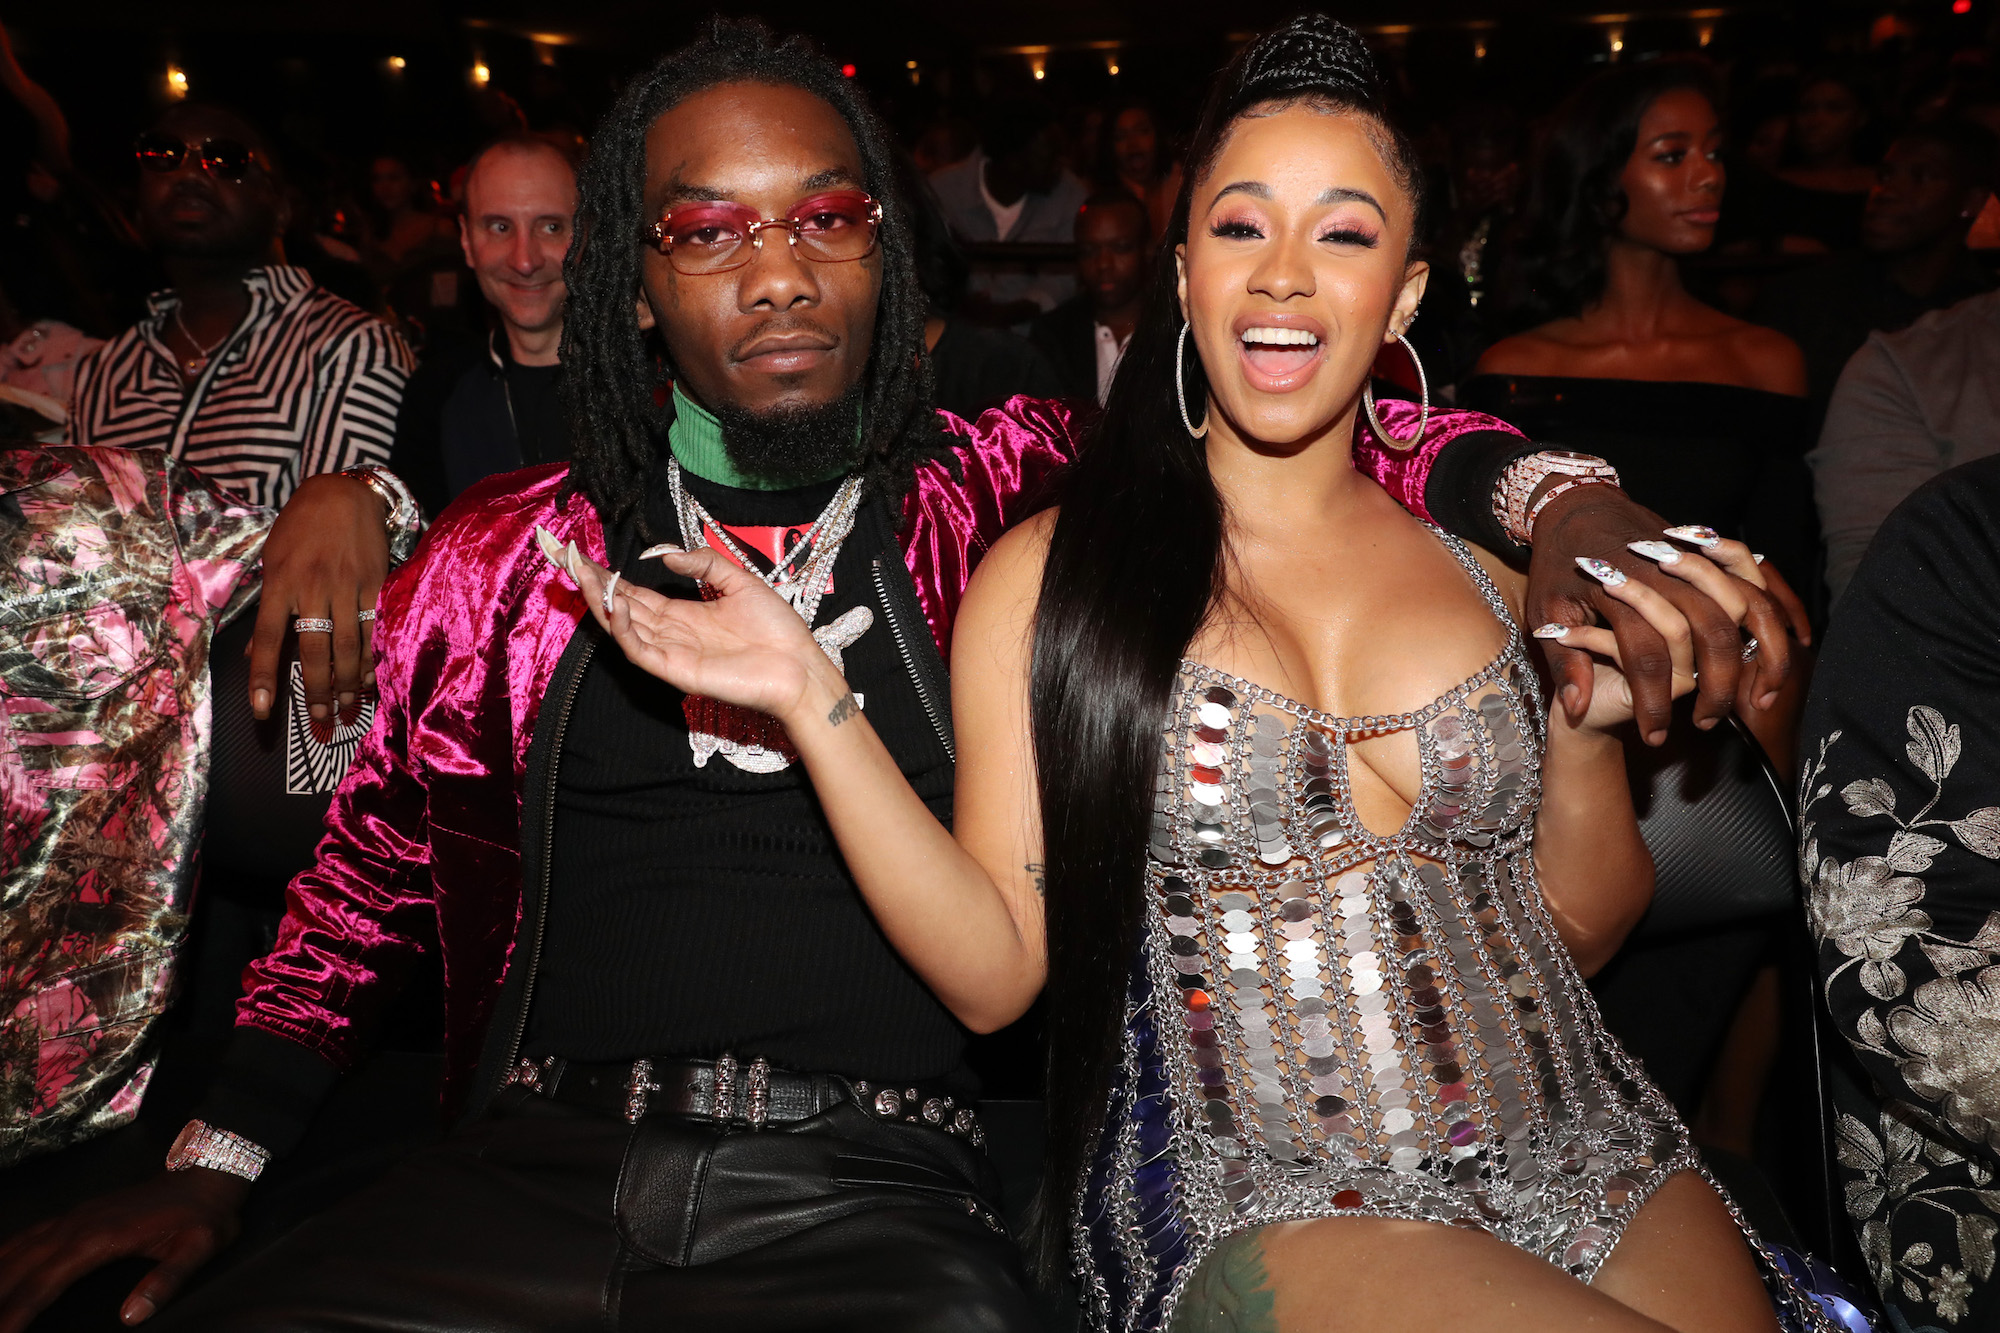 Is Cardi B S Offset Name Tattoo Real The Ink Is A Giant: Who Is Cardi B Dating?